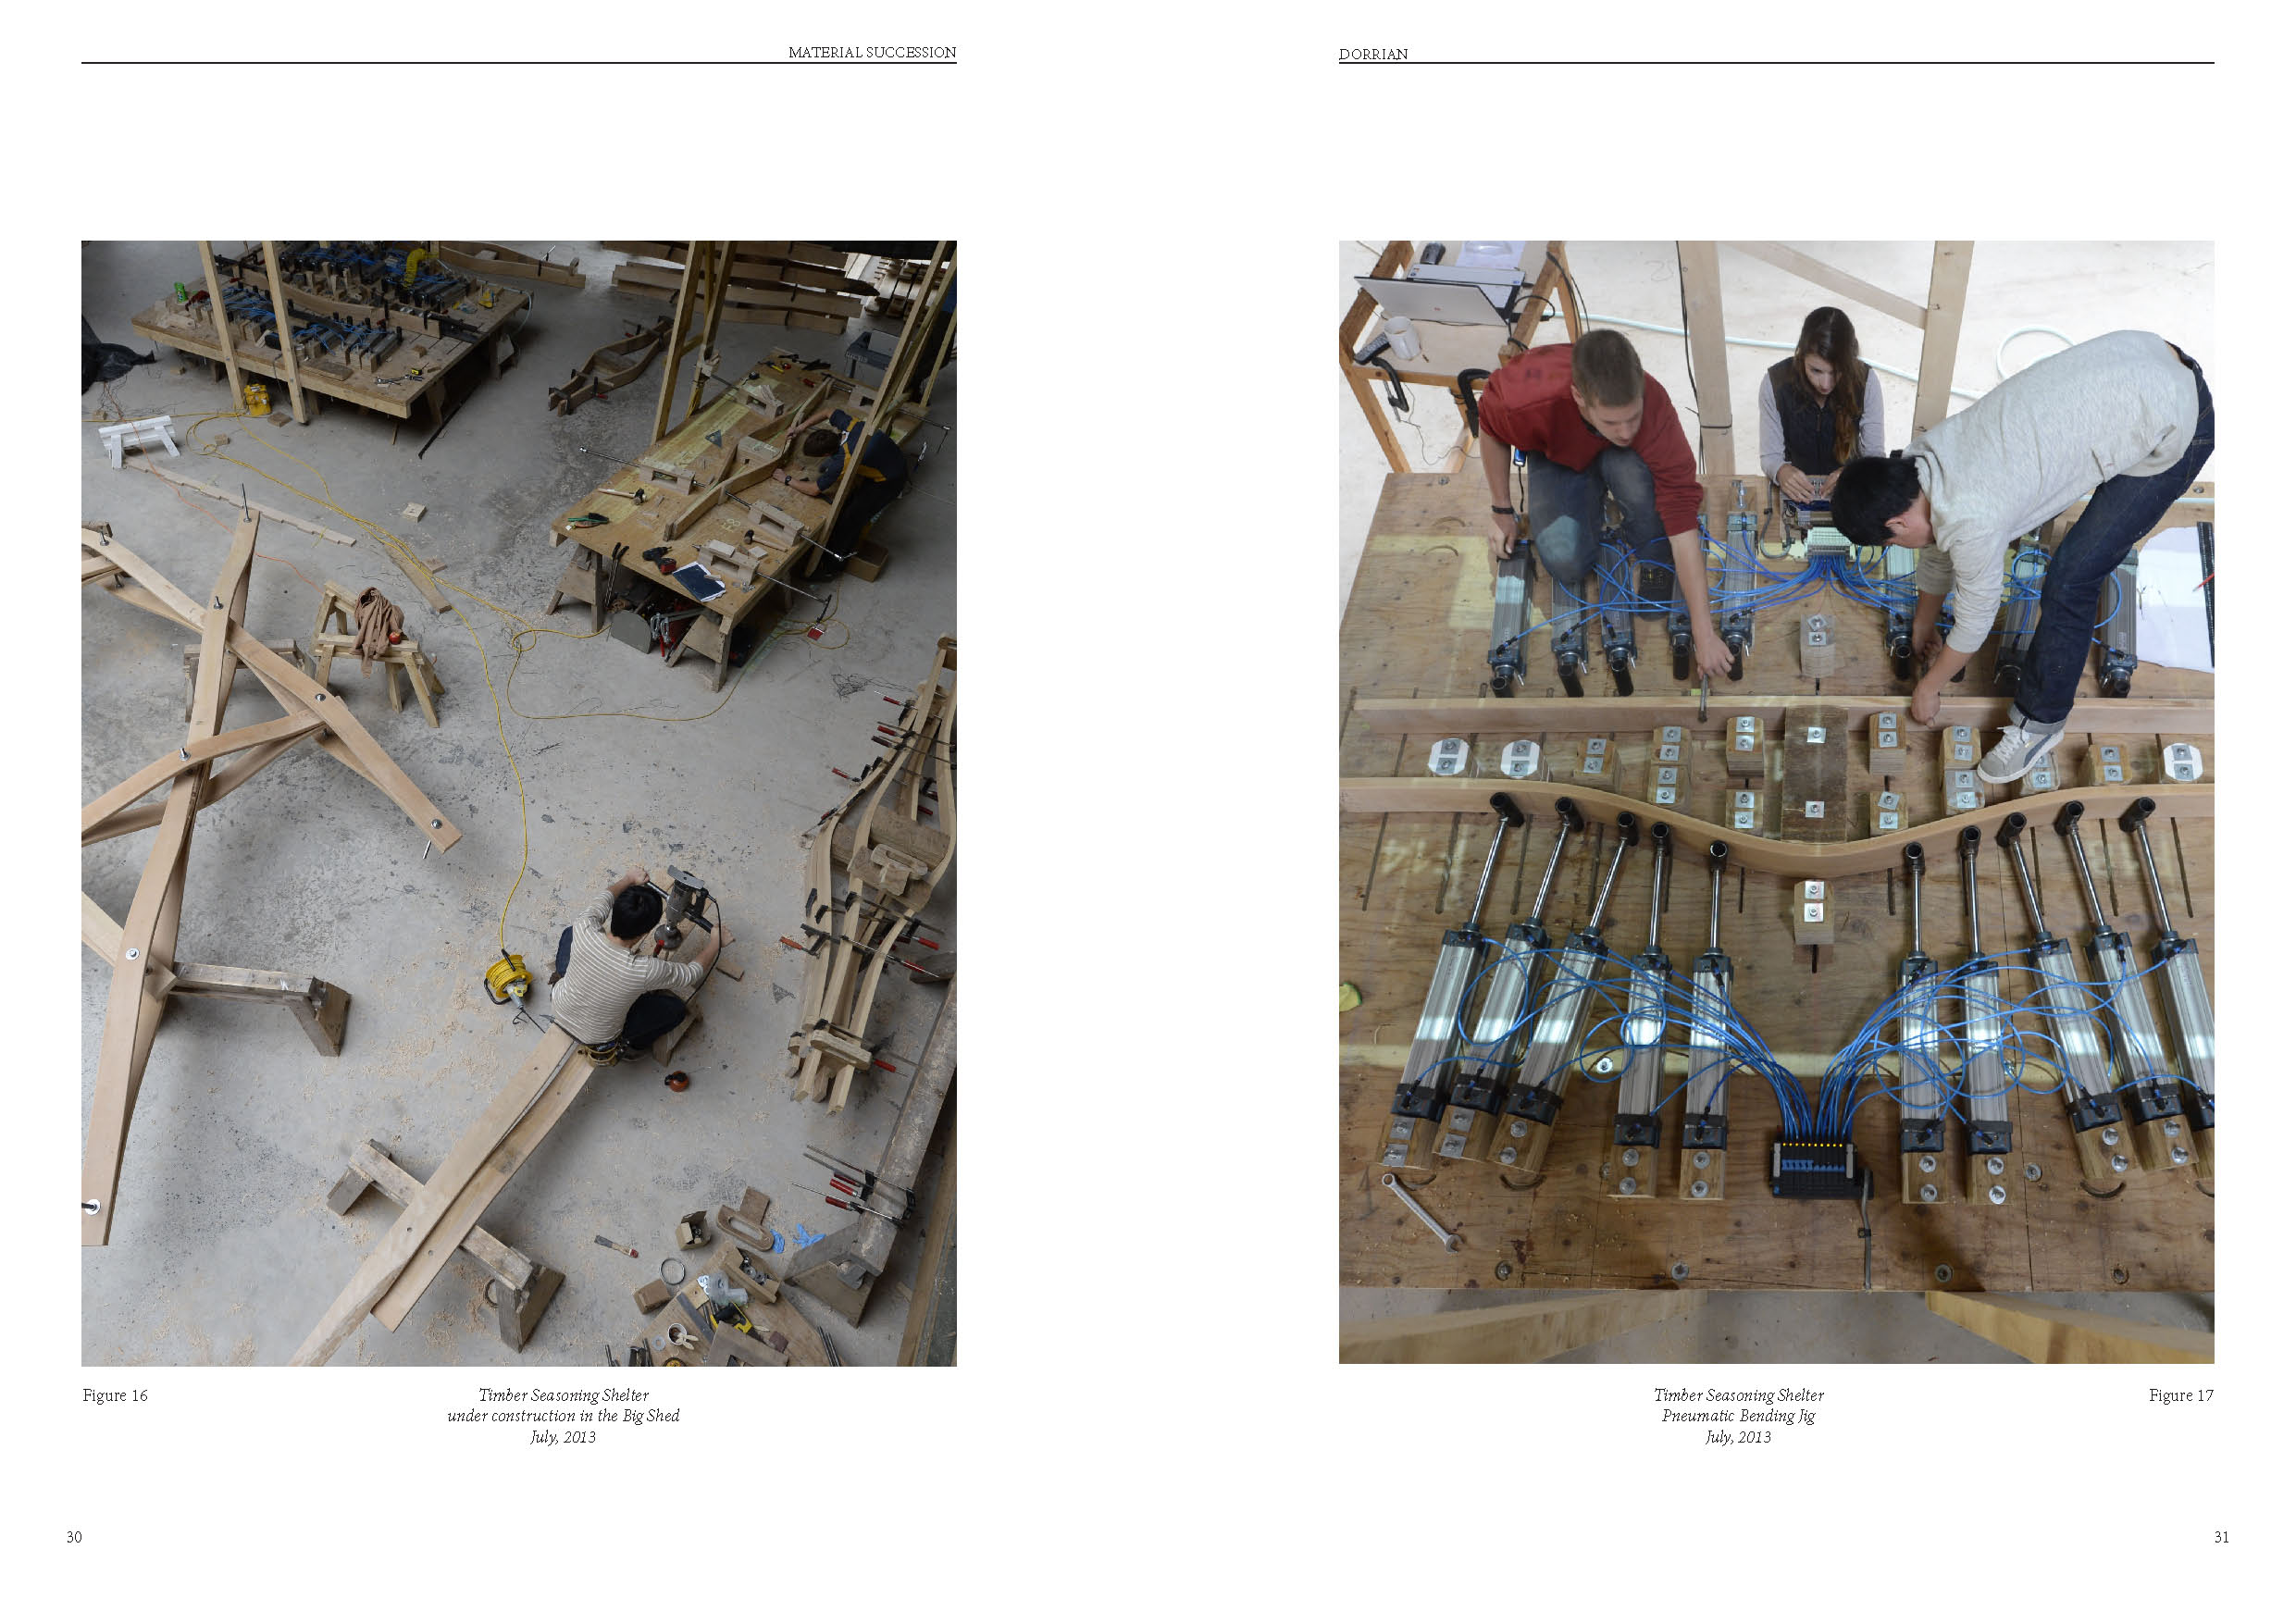 130131_Material SuccessionFORSUBMITTAL_Page_20.jpg